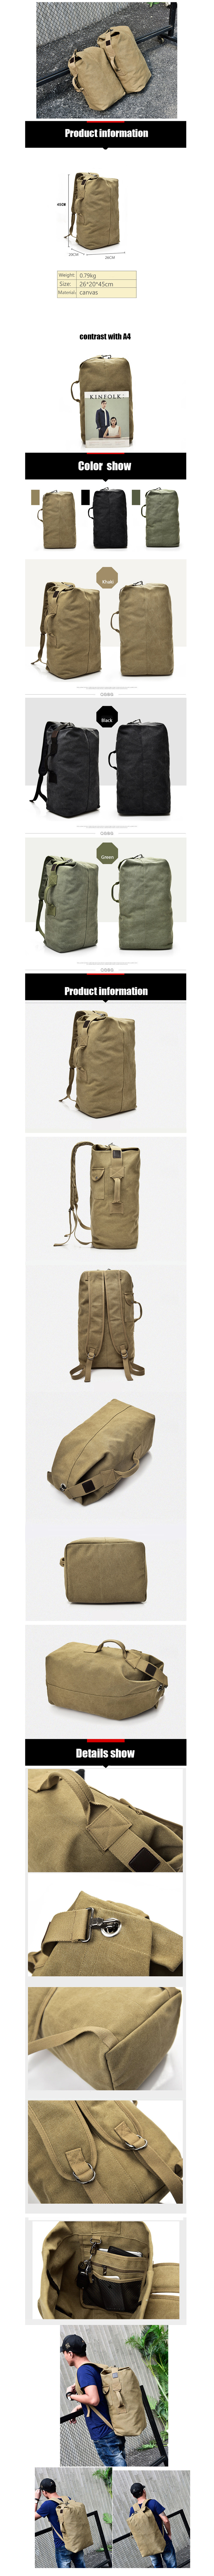 High-capacity Travel Backpack Man Backpack Outdoor Sports Bag Canvas